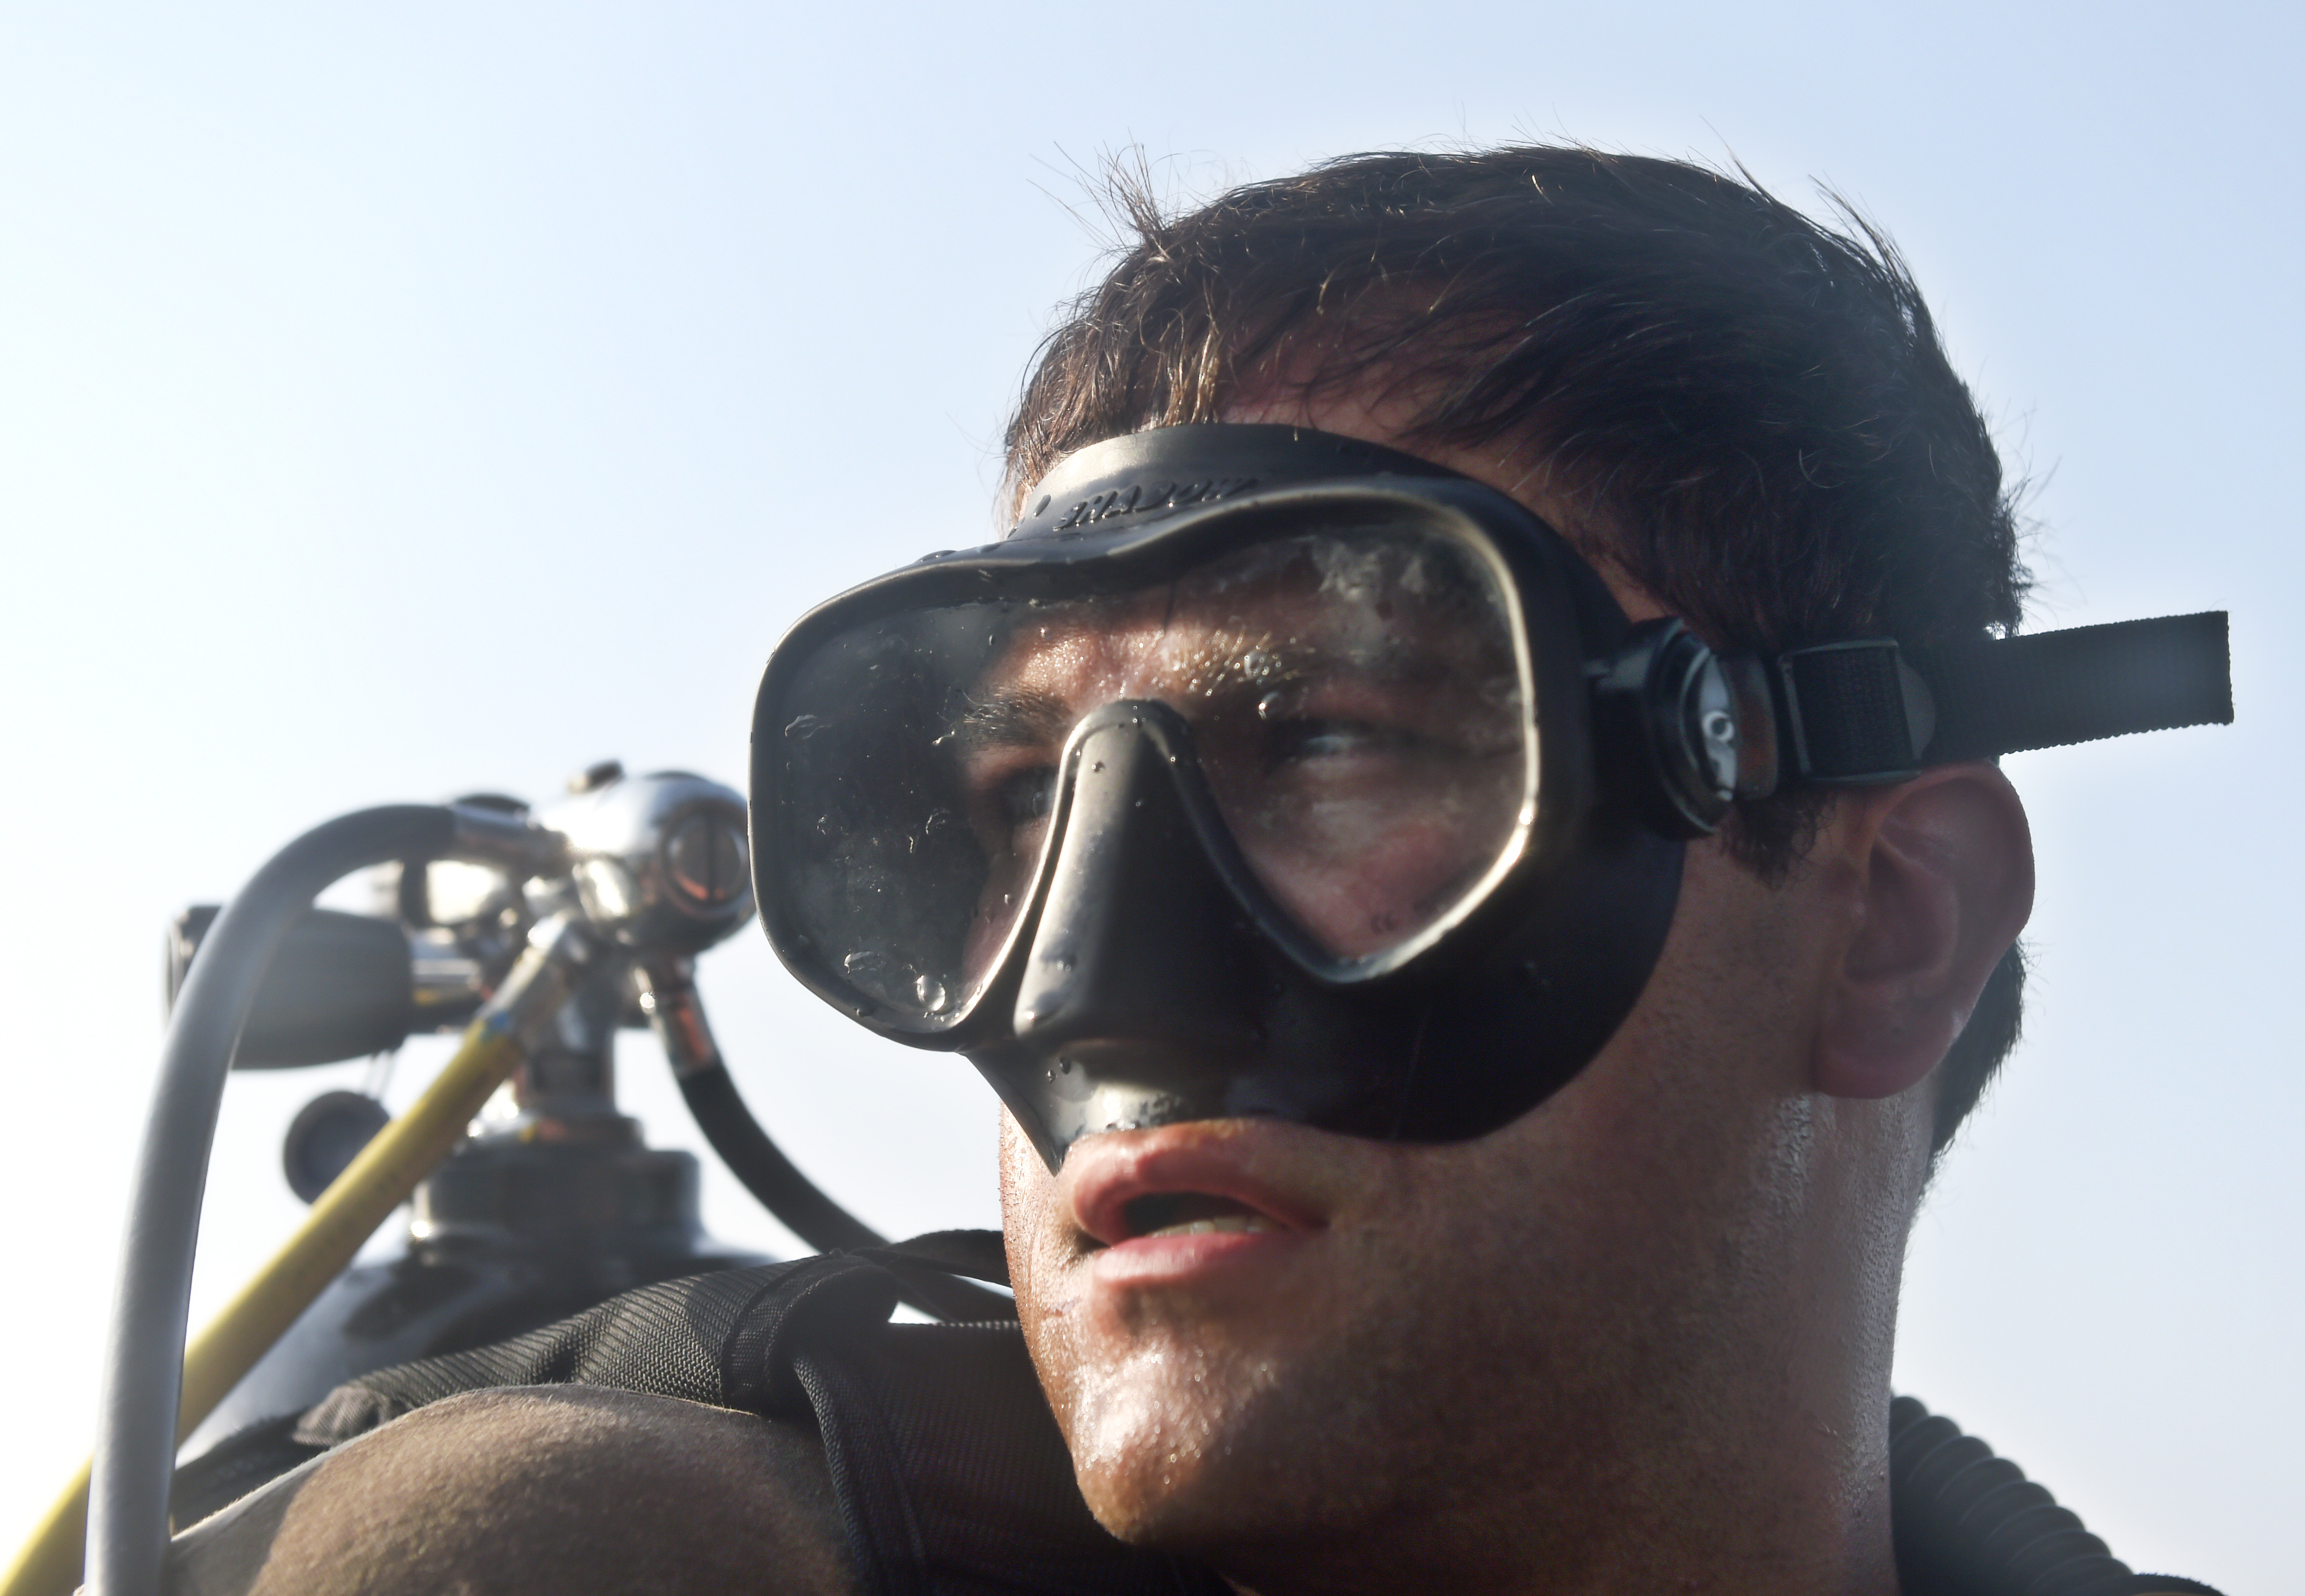 A U.S. Navy Explosive Ordnance Disposal technician prepares for a routine anti-terrorism force protection dive off the coast of Djibouti, Africa, Sept. 22, 2015. Assigned to Combined Joint Task Force-Horn of Africa, EOD technicians are trained to disarm explosive devices and clear underwater obstructions. (U.S. Air Force photo by Senior Airman Nesha Humes)